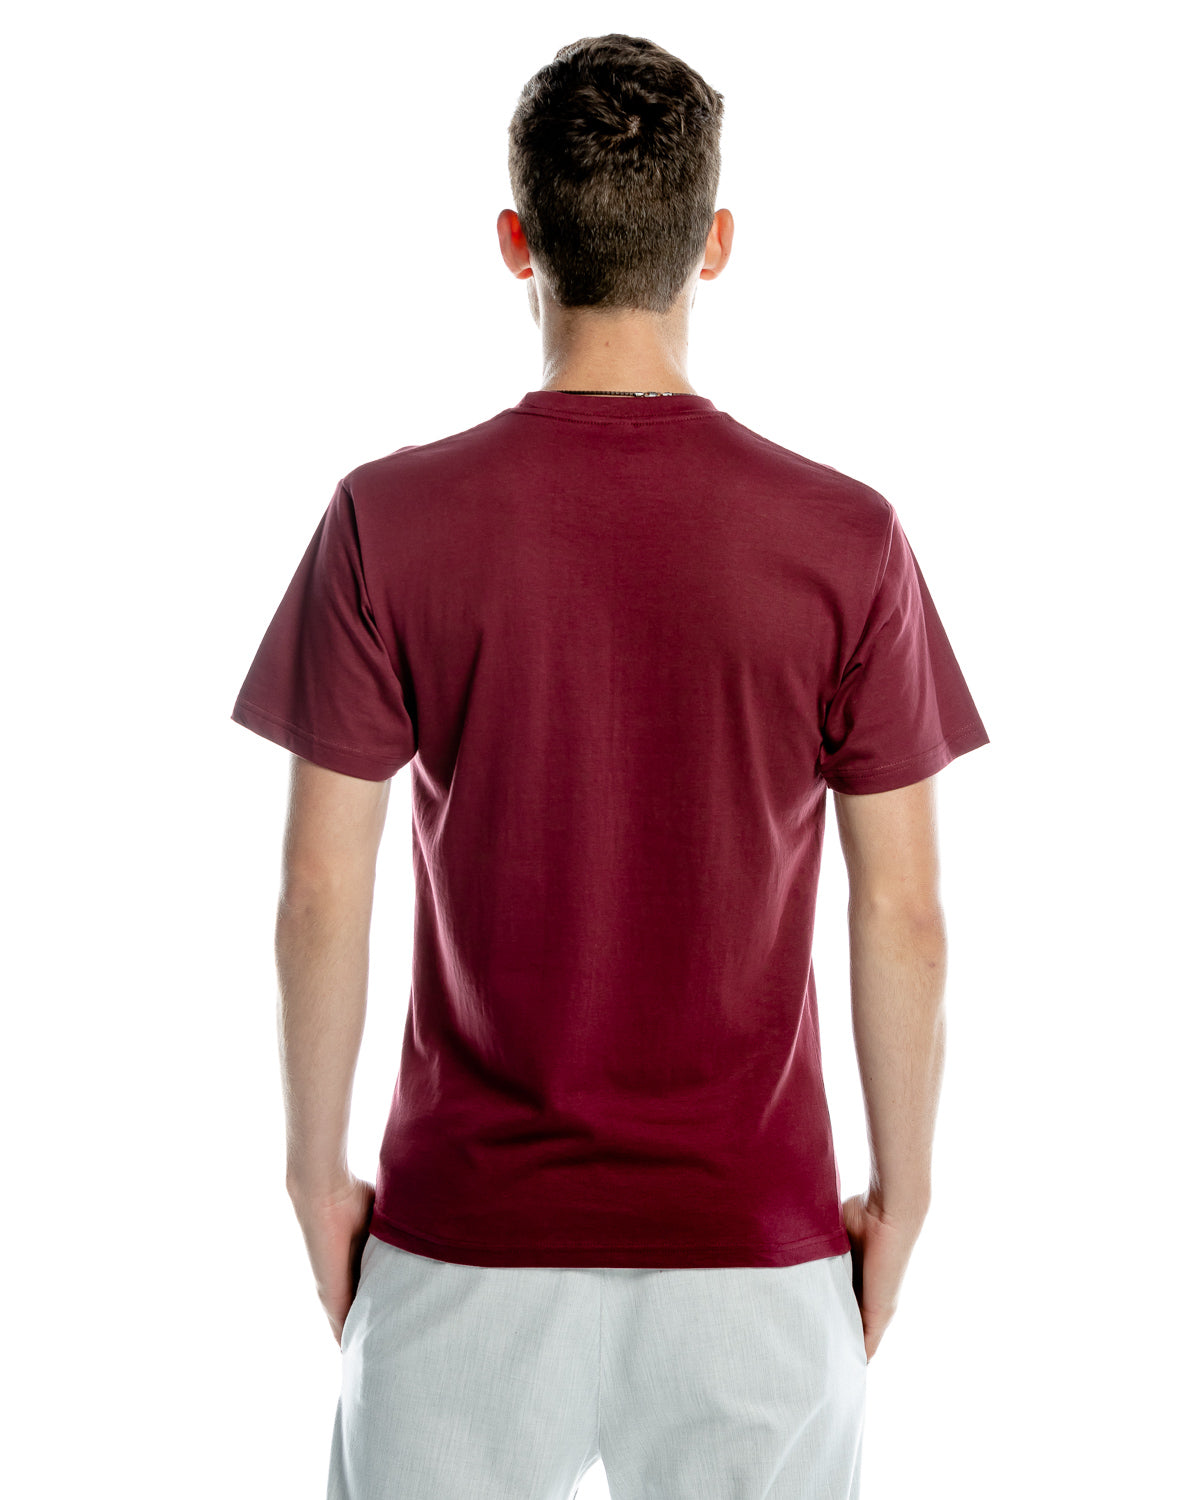 Men's Griffith crew neck tee